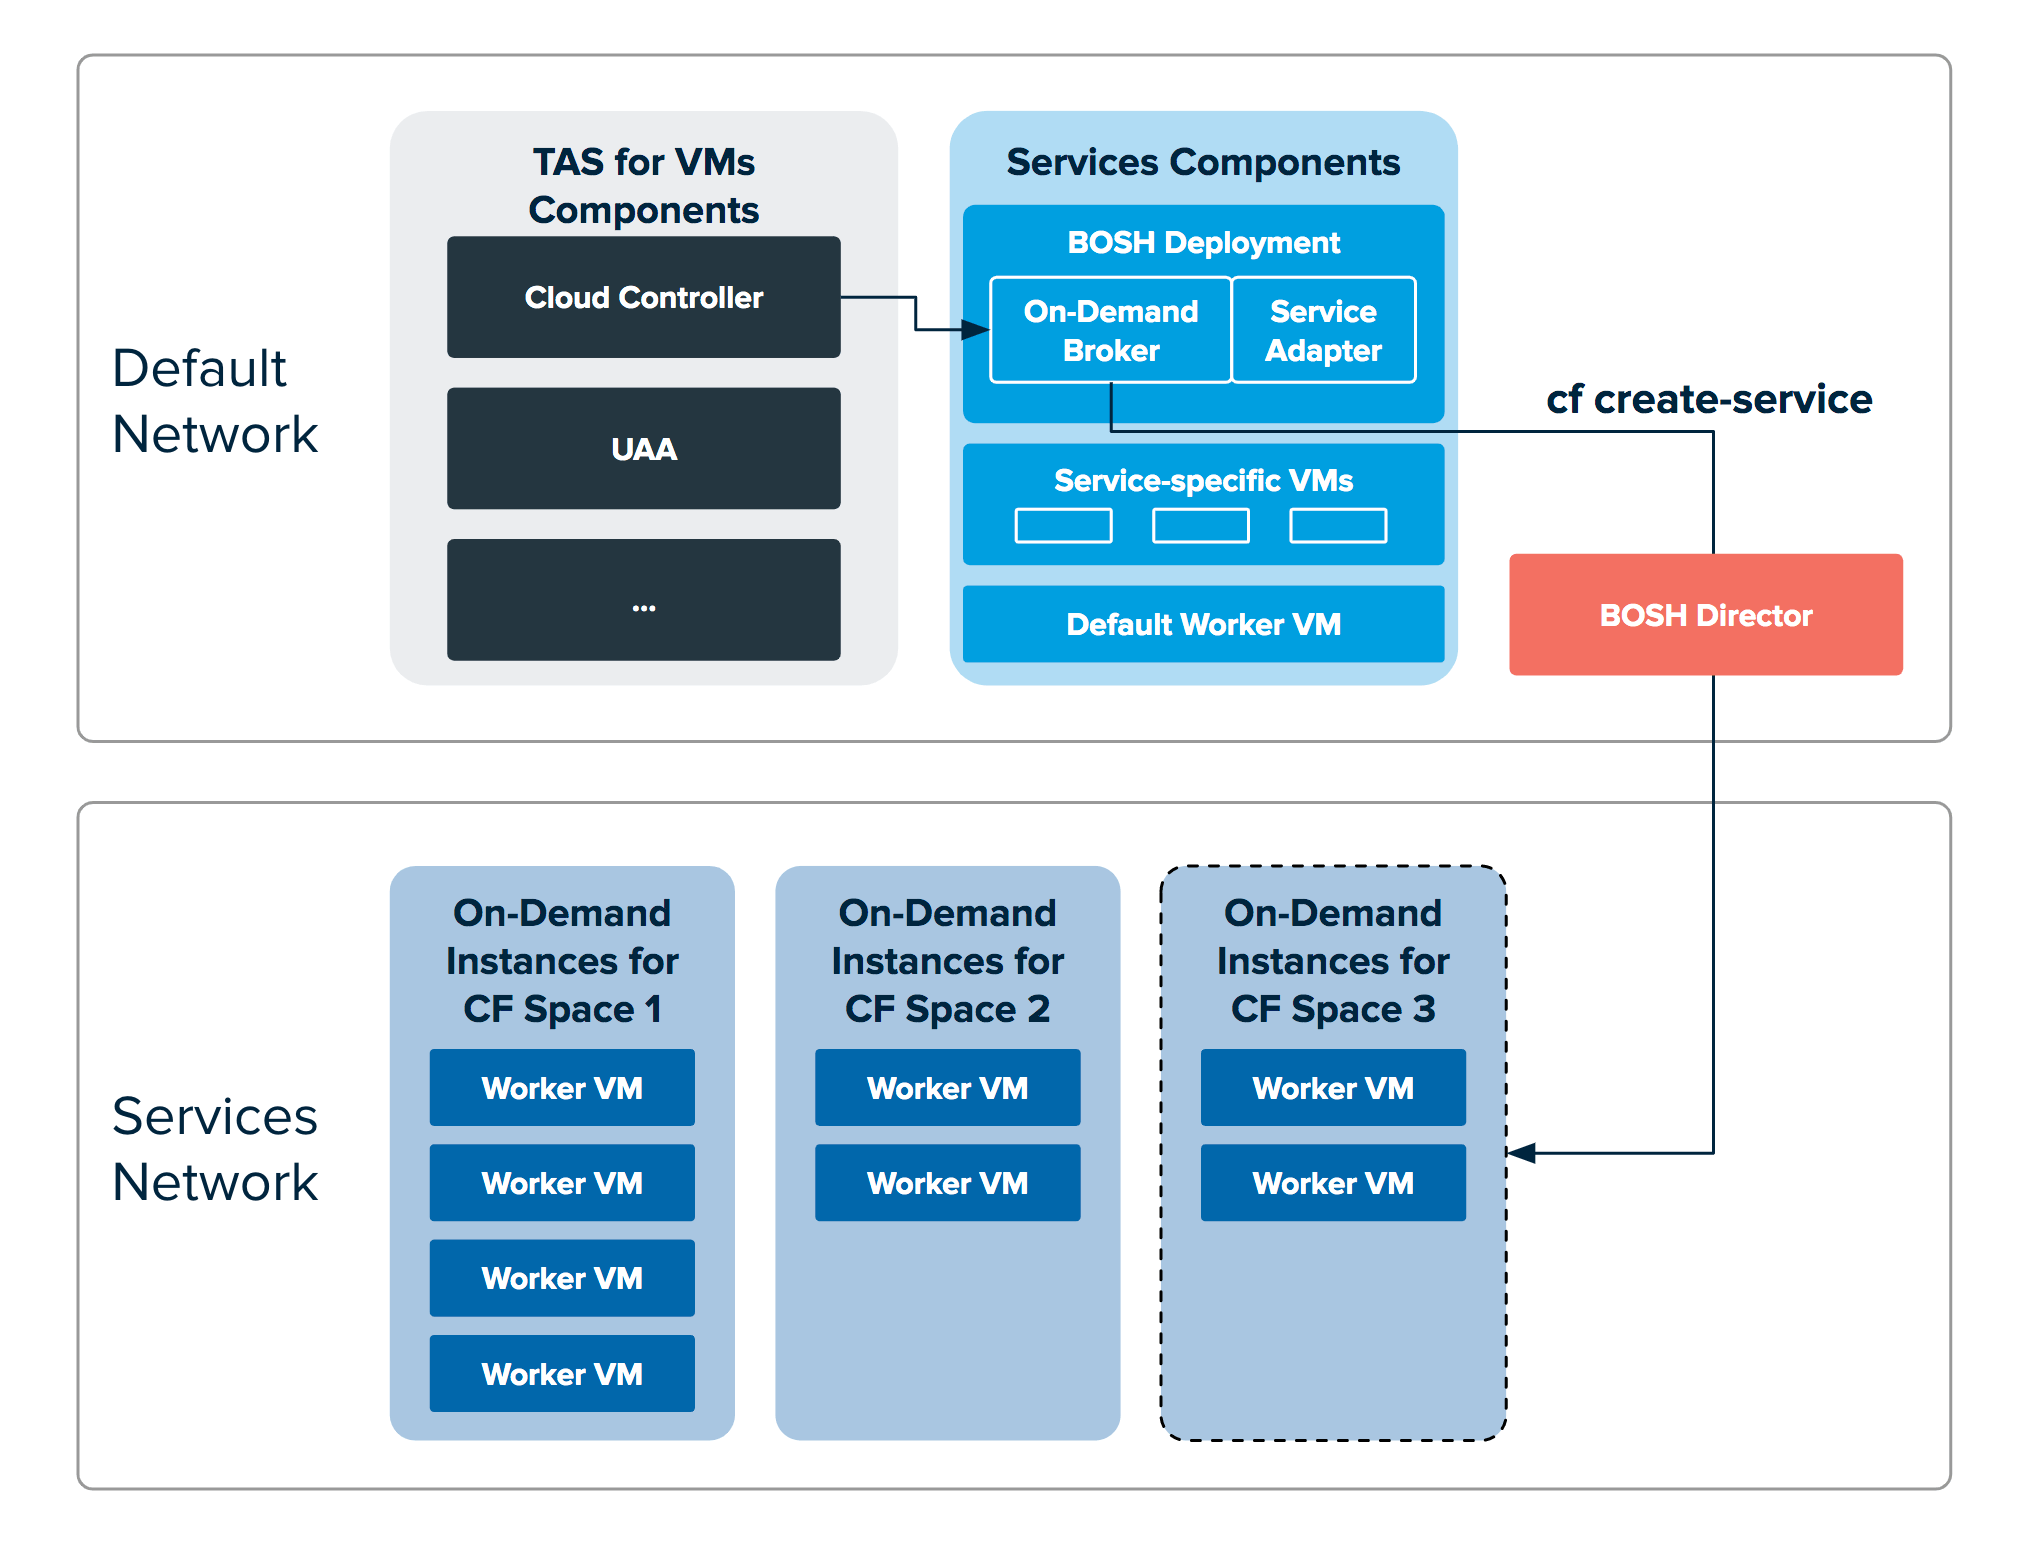 Diagram shows the Default Network and the Services Network. The Default Network shows the Cloud Controller, communicating with the On-Demand Broker, which communicates with the BOSH Director when the user runs the cf create-service command. The BOSH Director then adds an on-demand instance to the Services network. The instances have been created in separate spaces and have several worker VMs.